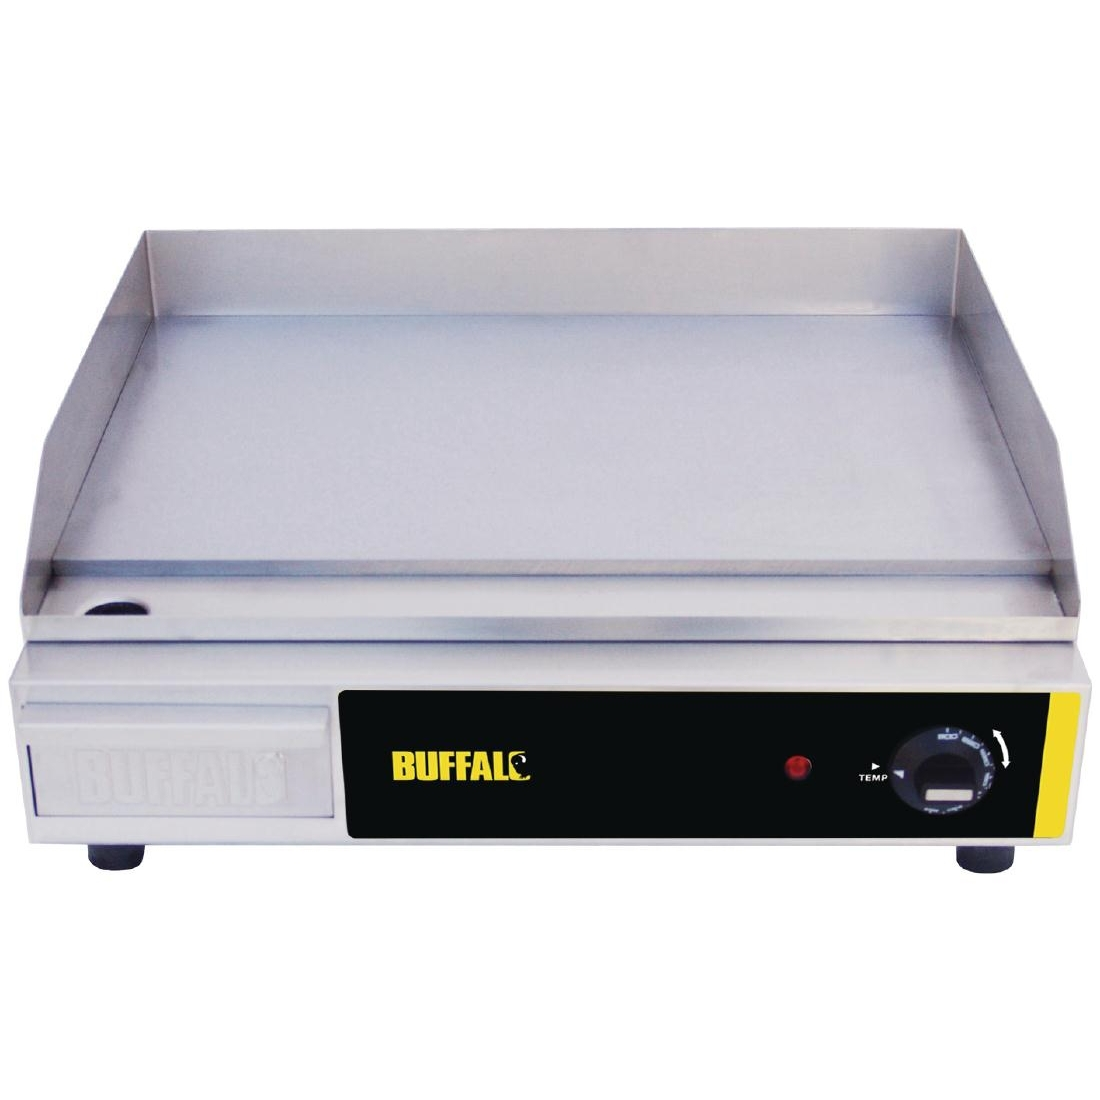 star cooking equipment top commercial countertops griddle max flat inch en countertop griddles grills electric